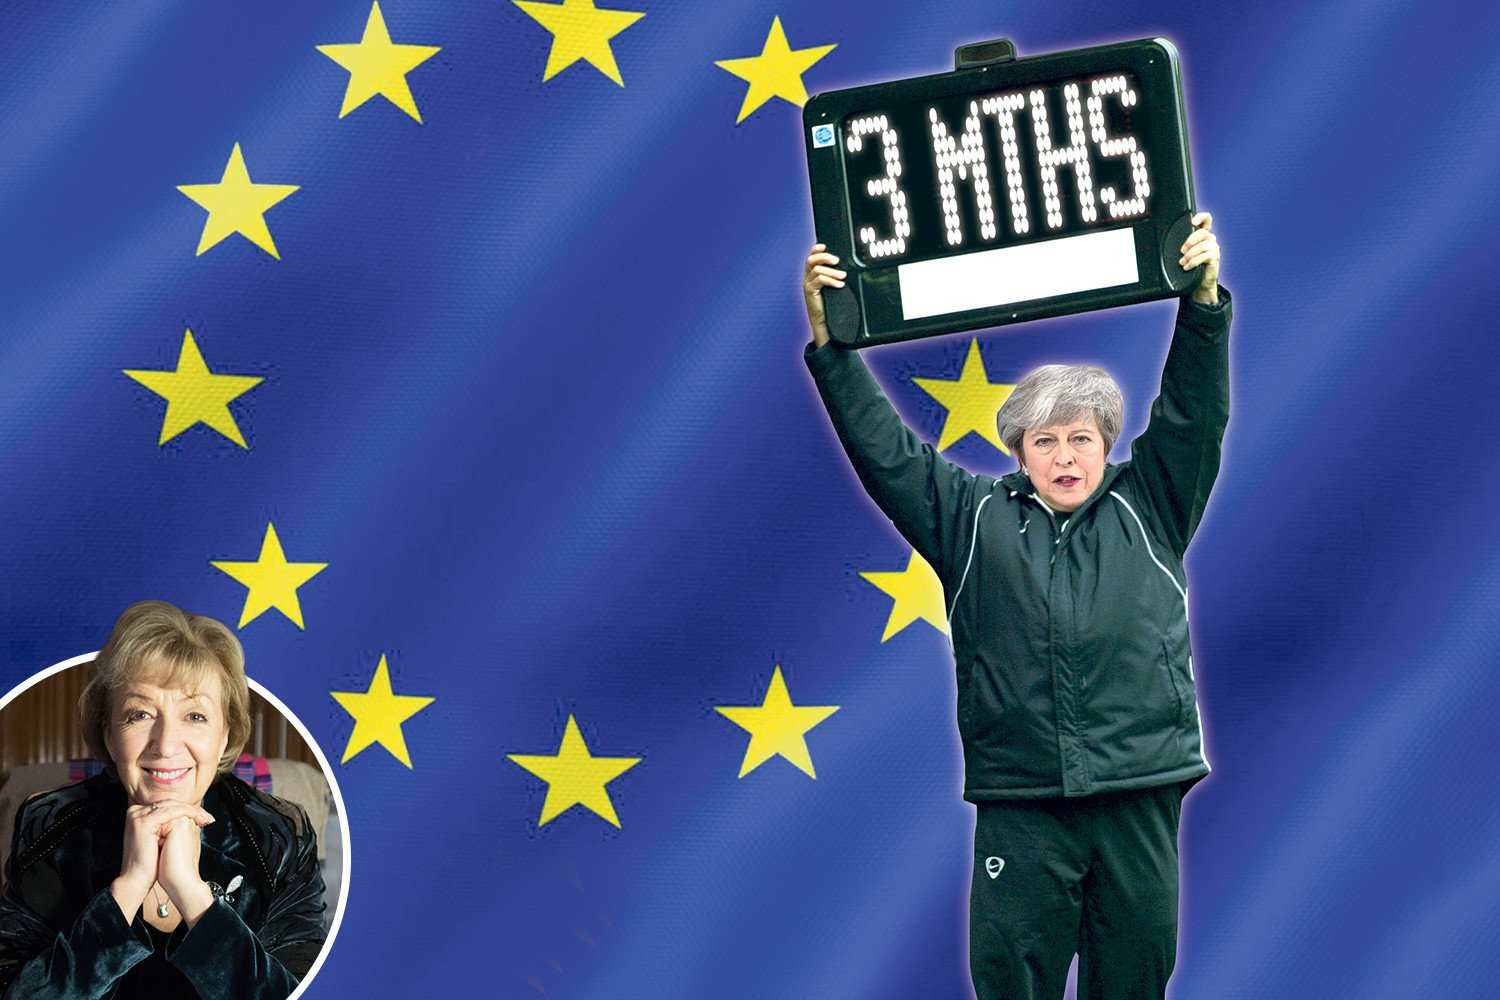 We don't need lots of Brextra time to leave the EU — we should acknowledge the country's desire to get this settled and crack on